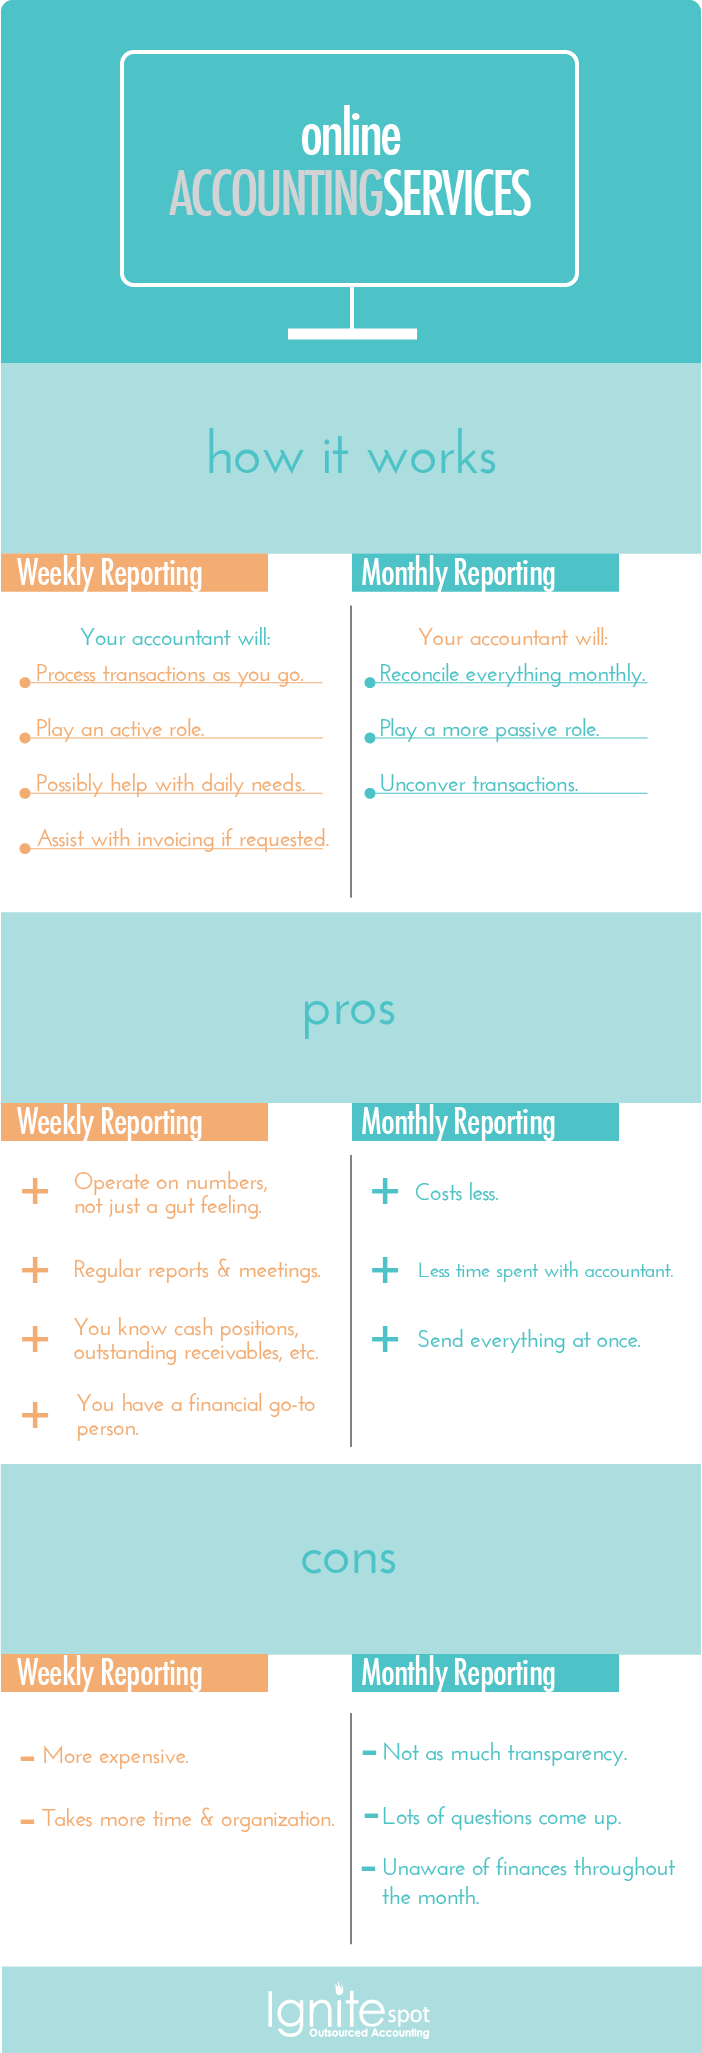 accounting_services_online_infographic